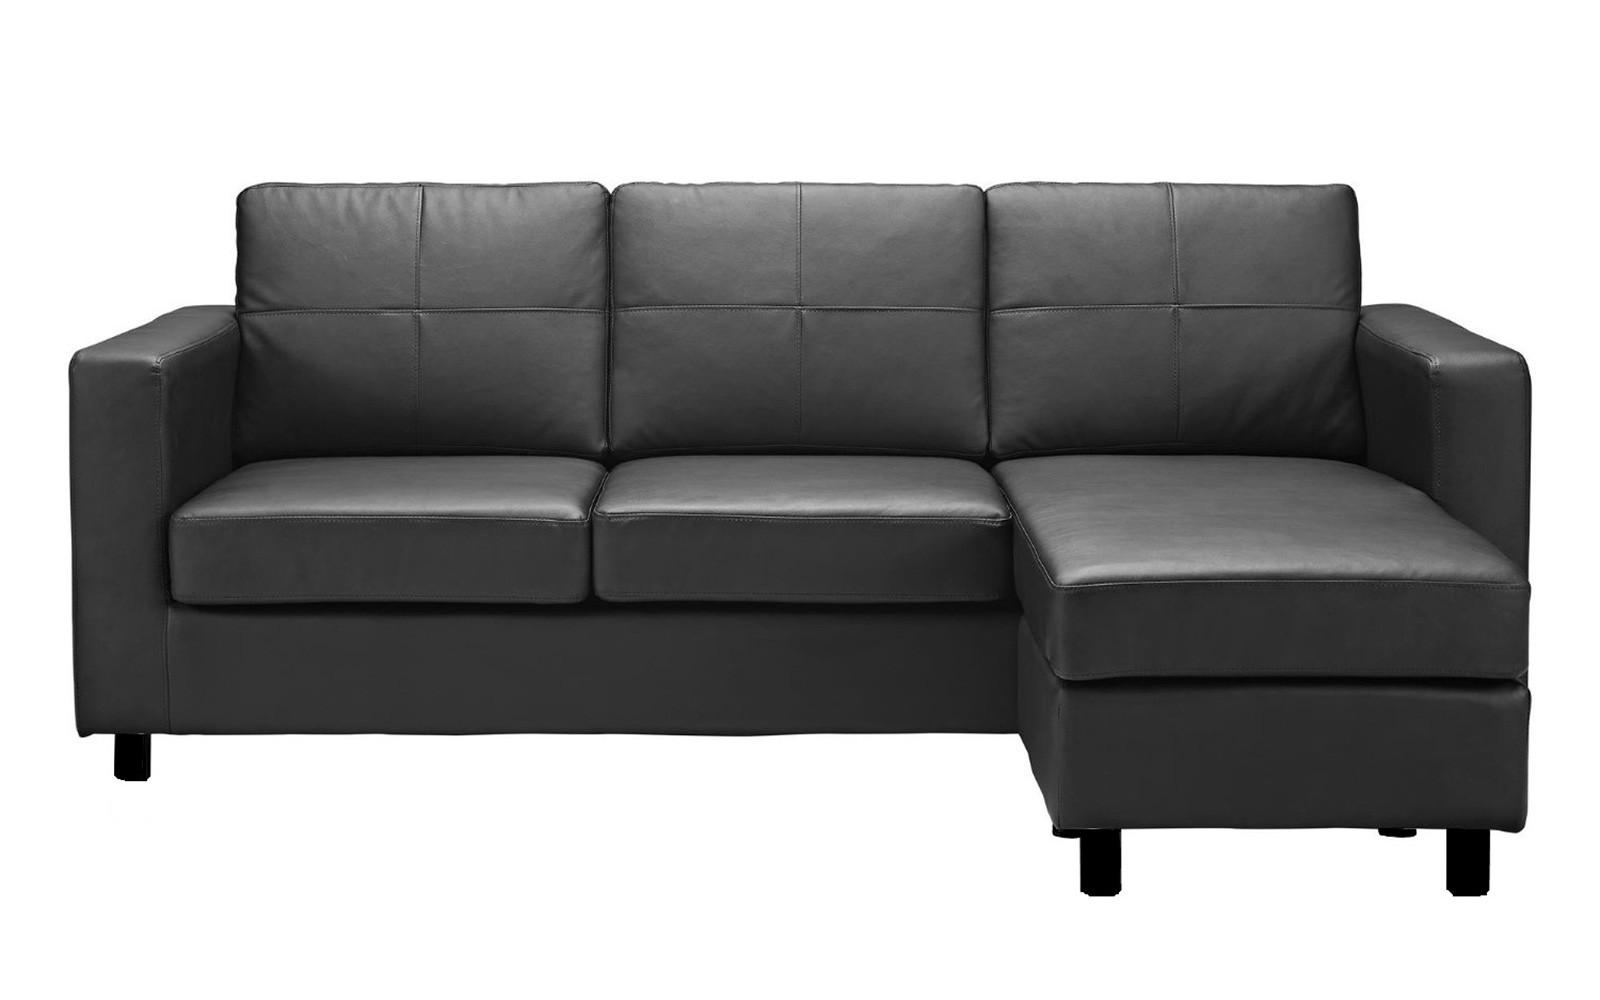 Modern Reversible Small Space Configurable Bonded Leather With Regard To Modern Sectional Sofas For Small Spaces (Image 10 of 20)